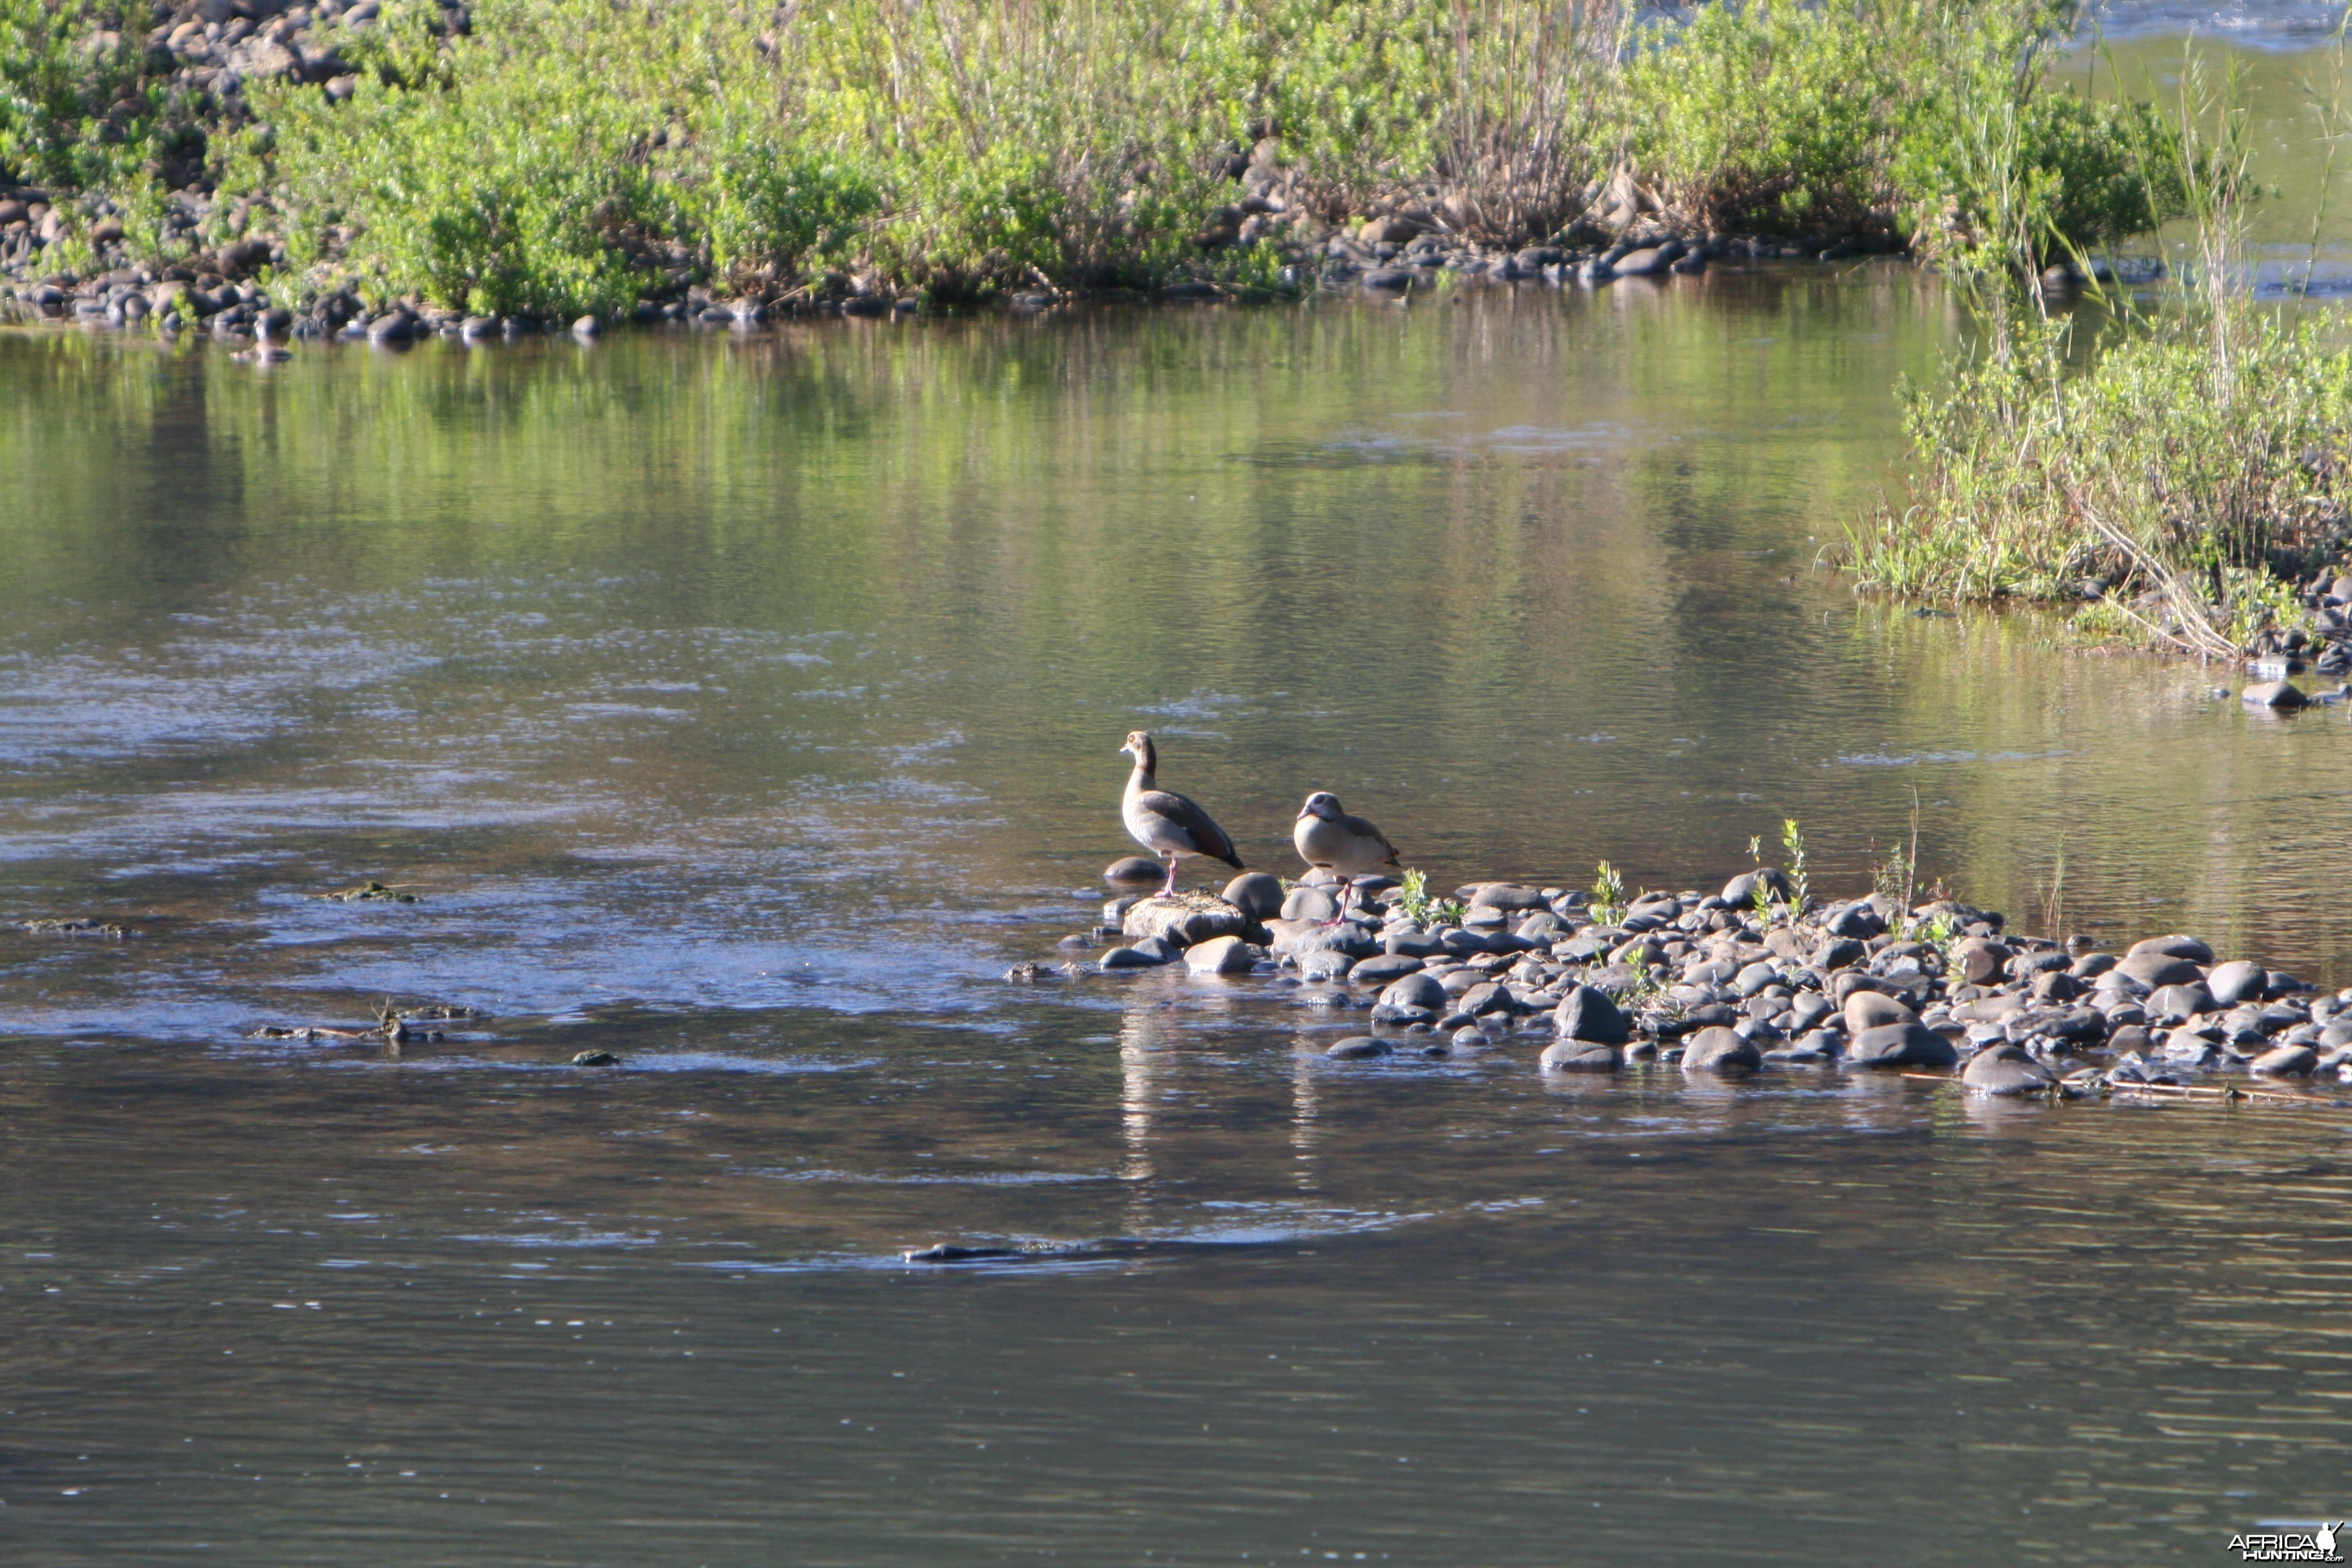 Egyptian Geese at the crossing